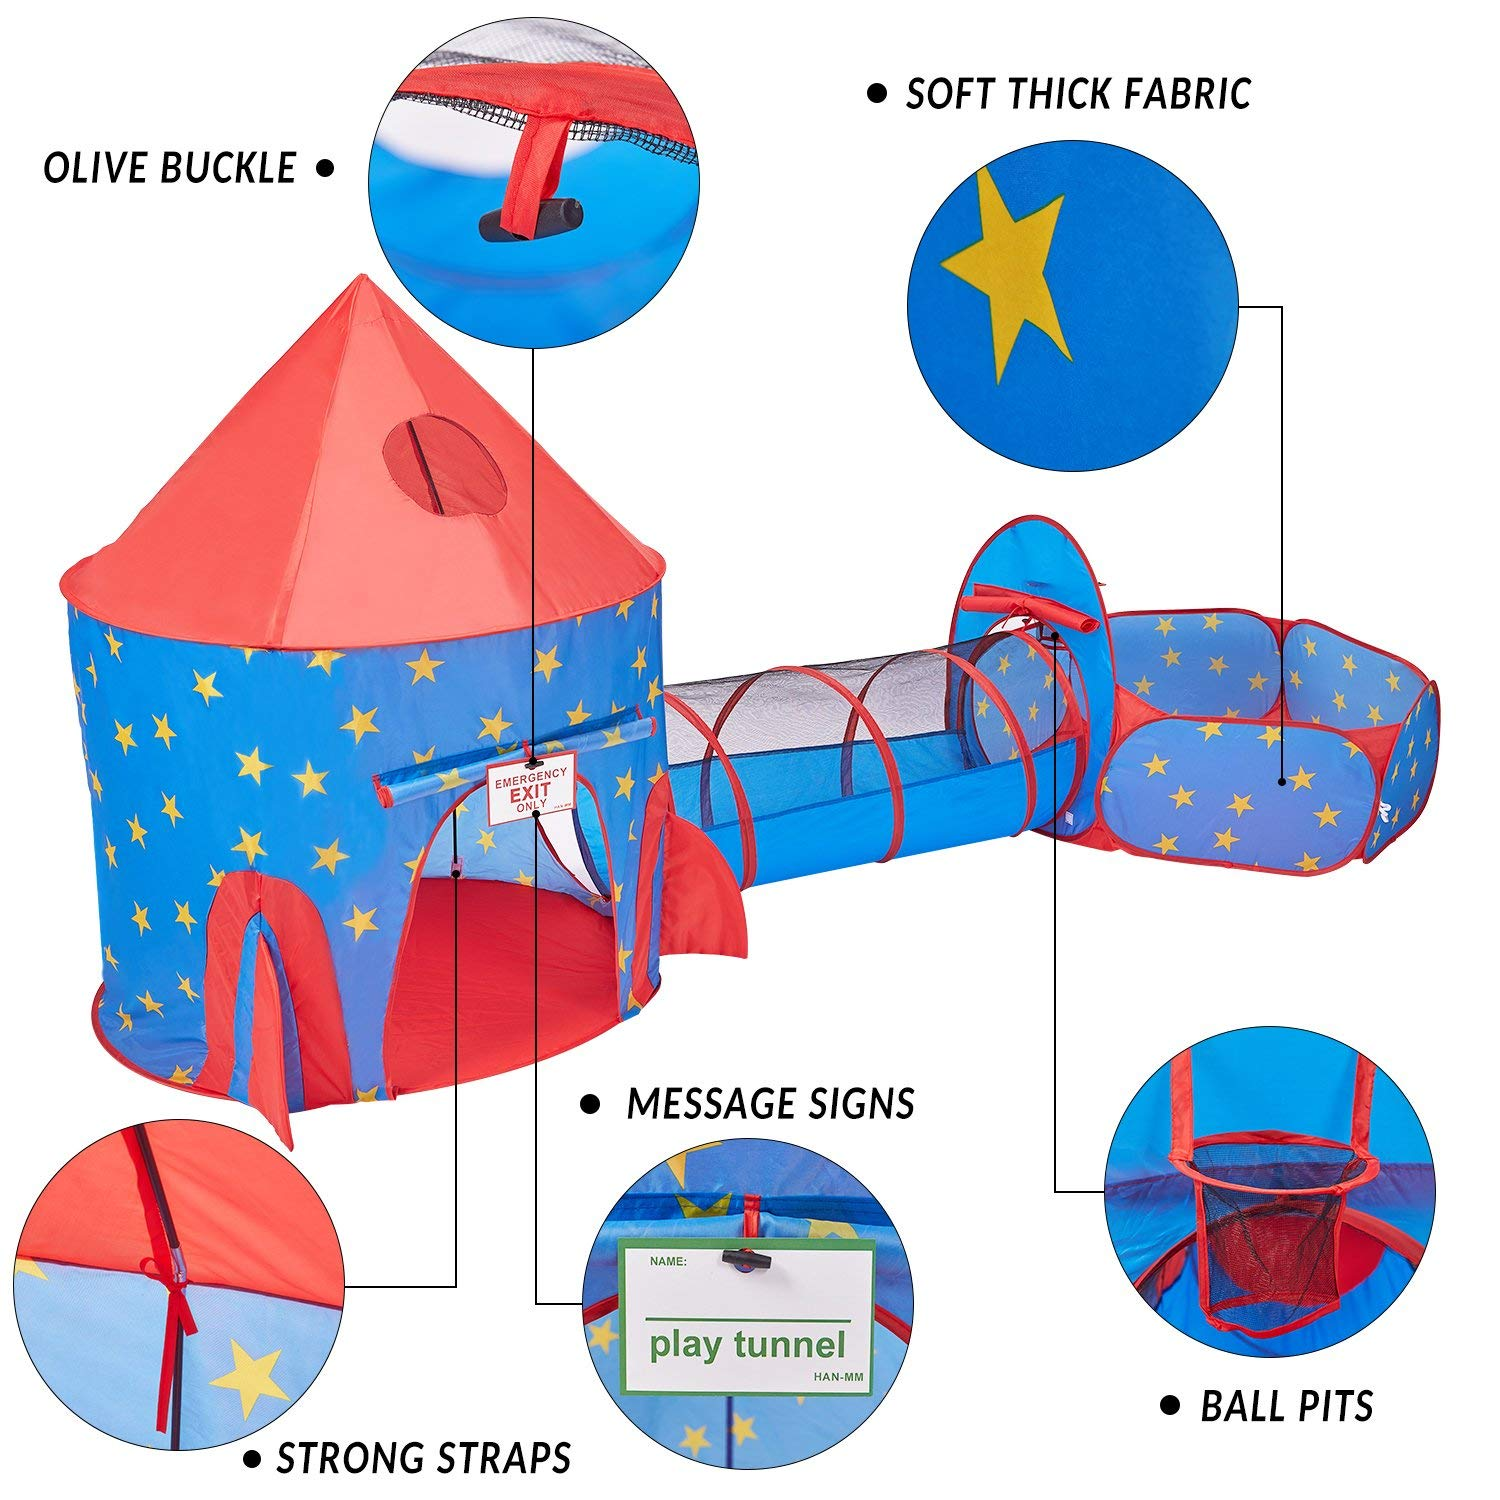 HAN-MM 3pc Play Tent Ball Pit with Tunnel Stars Glow in The Dark, Tunnel & Ball Pit Basketball Rocket Ship Astronaut Hoop Toys with Bonus Message Signs for Indoor Outdoor Camping by HAN-MM (Image #3)